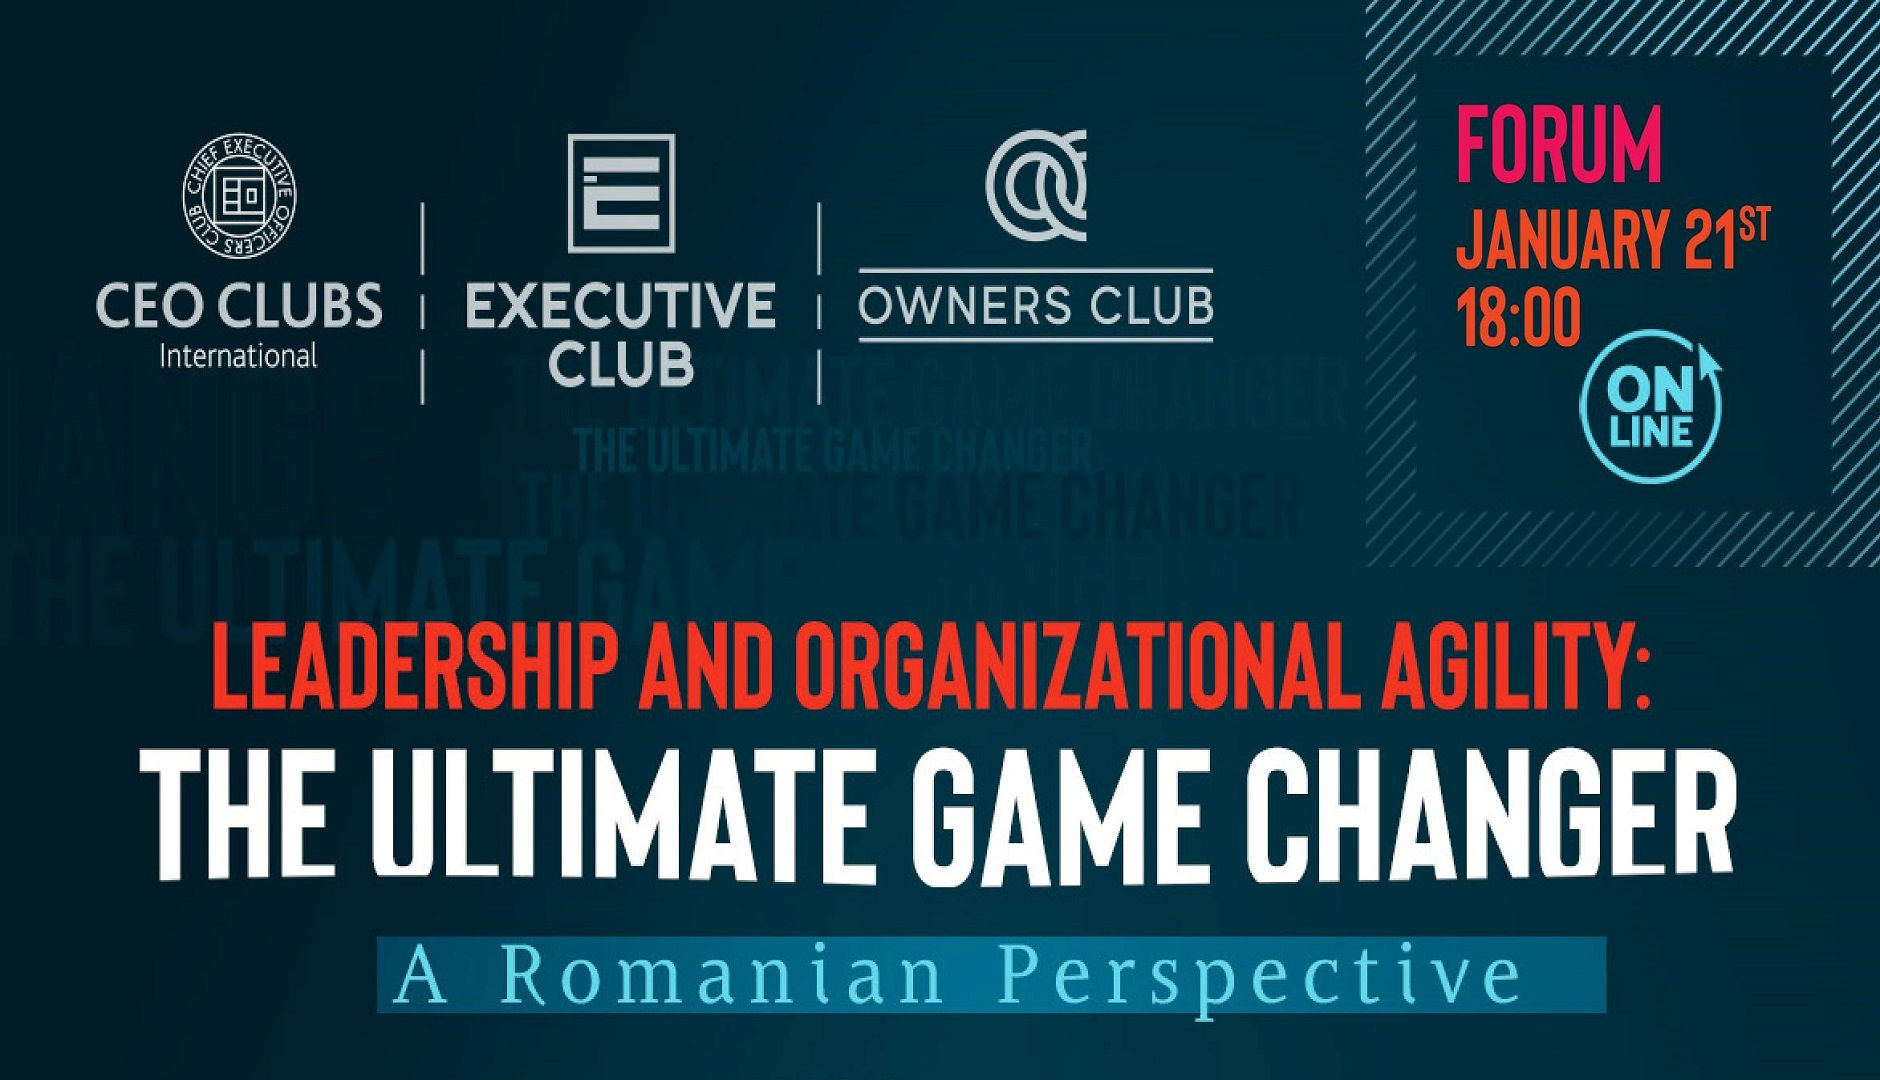 Online Forum - Leadership and organizational agility: The ultimate game changer